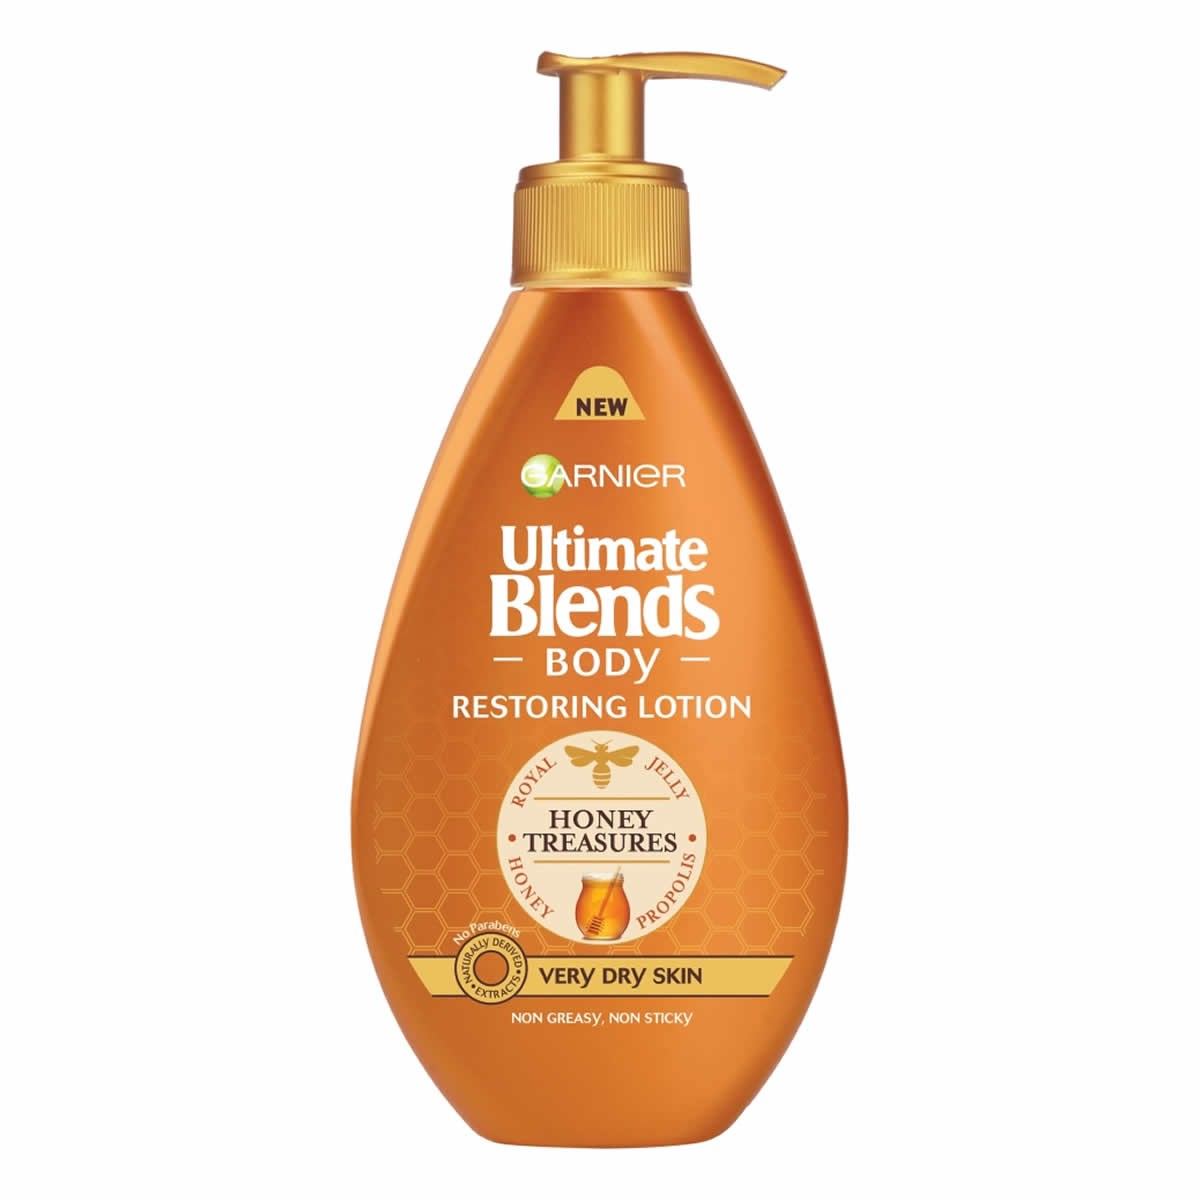 Garnier Ultimate Blends Body Honey Treasures Restoring Lotion